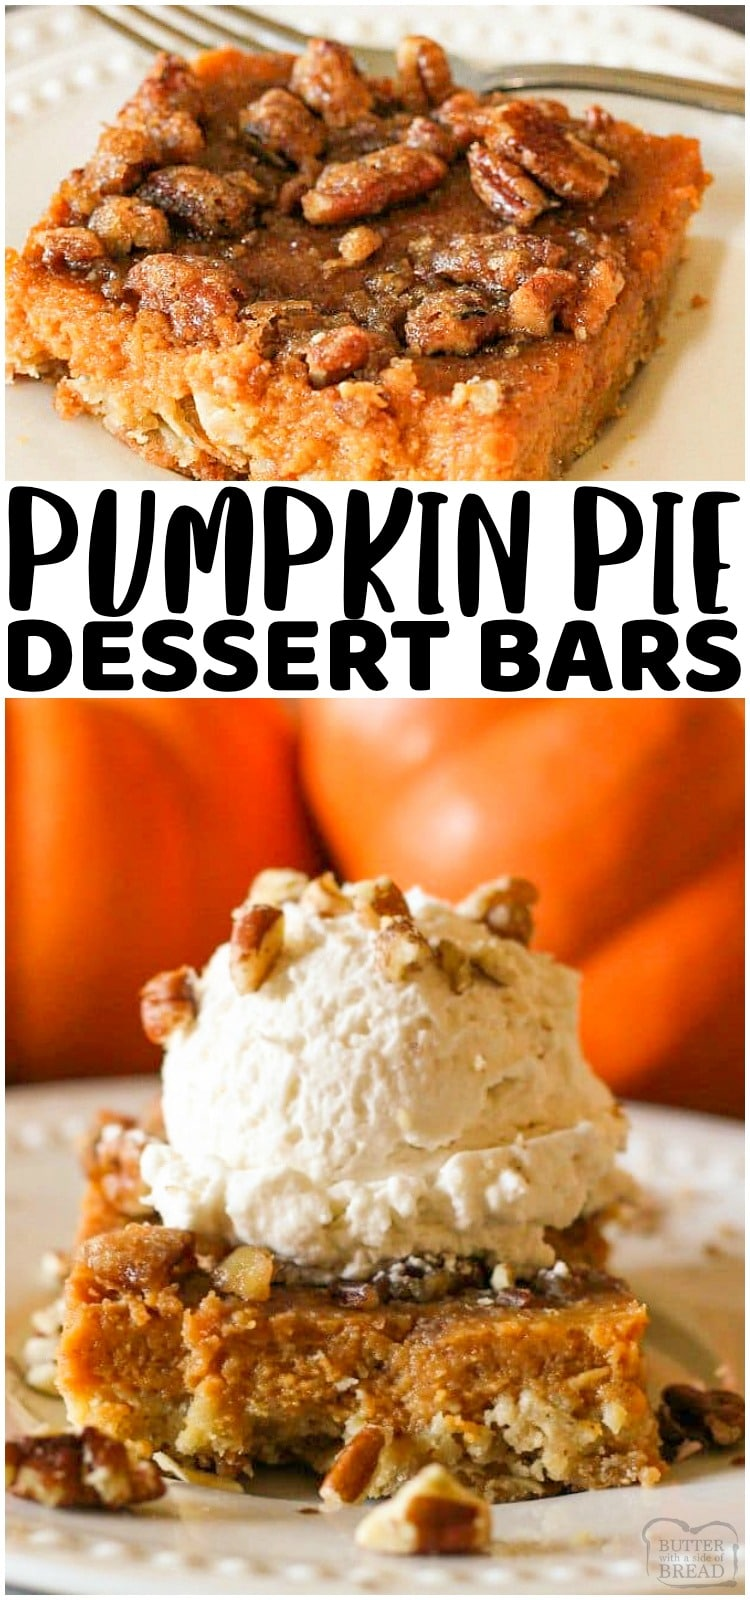 Pumpkin Pie Bars have a simple oat, butter crust with a traditional pumpkin pie filling topped with crunchy, sweet pecans. This bar version of the best pumpkin pie recipe is the perfect Thanksgiving Dessert for feeding a crowd and so much easier than making a pie!